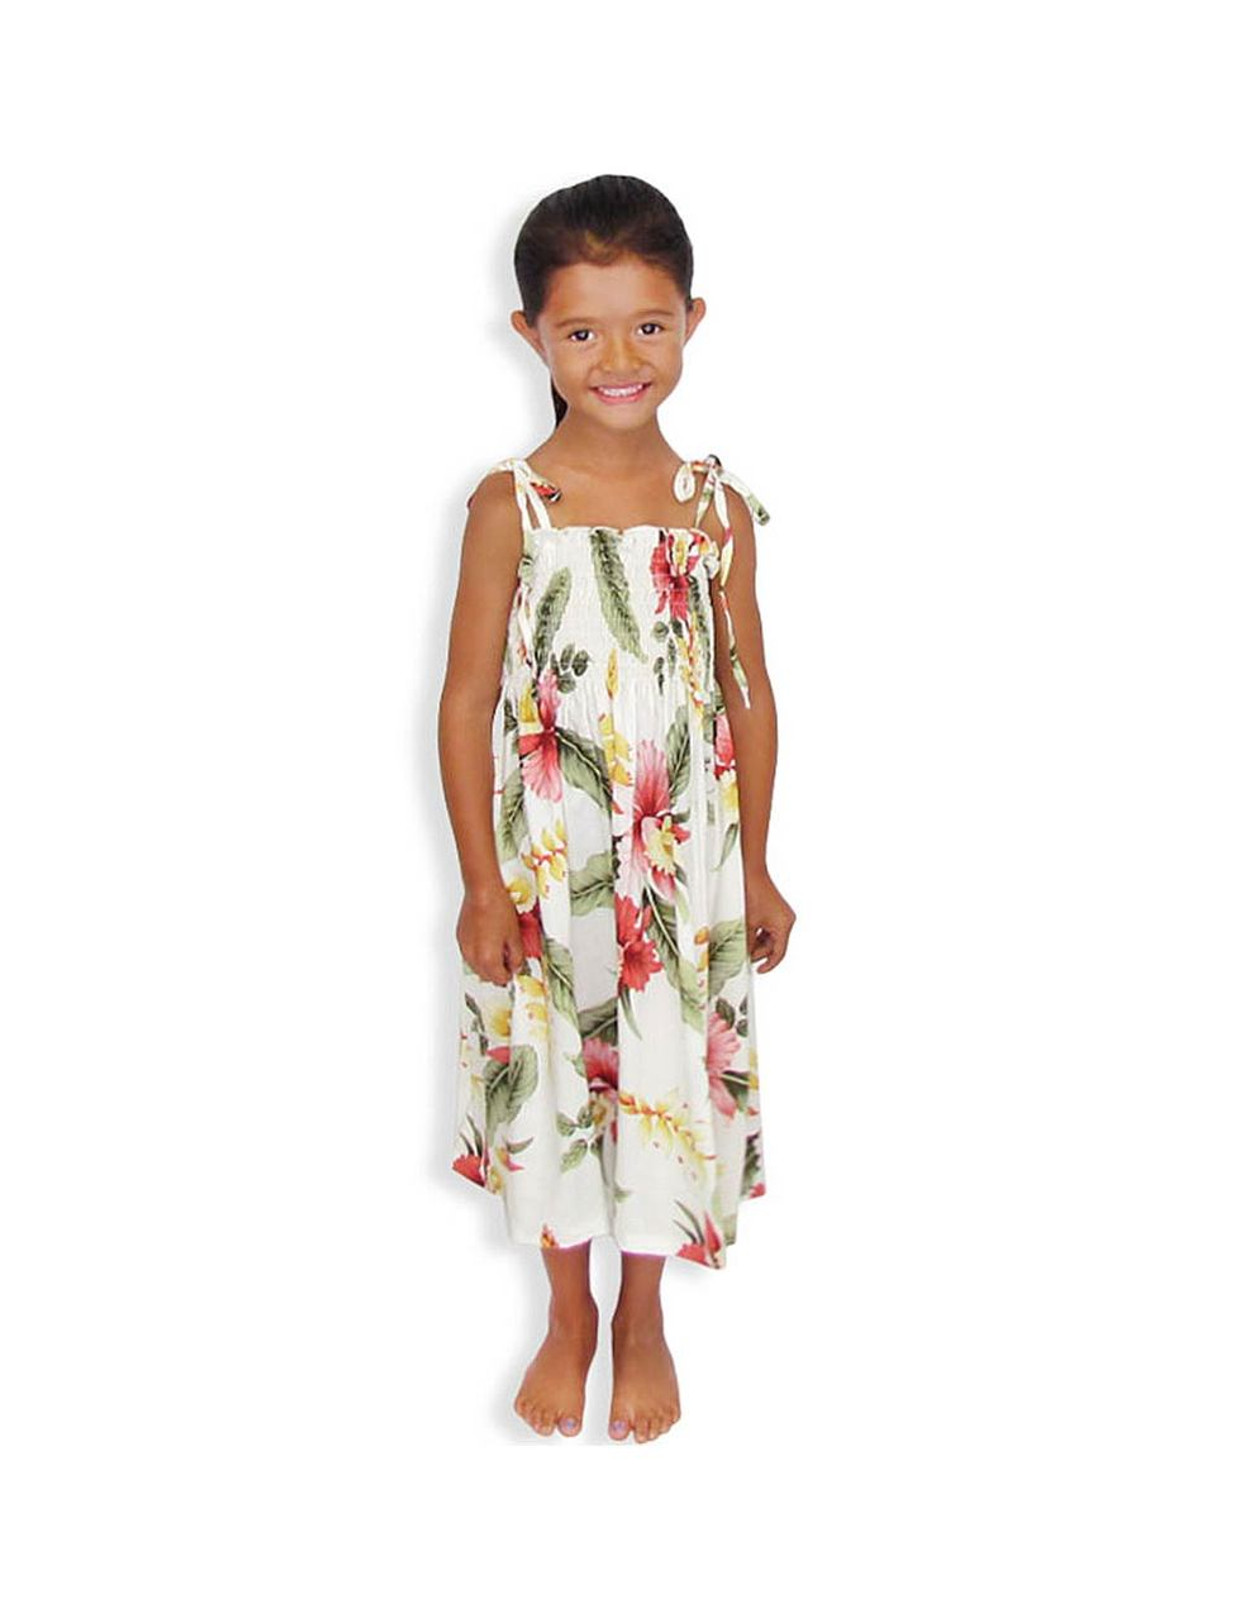 e18f101d0431 Girls Smock Tube Top Dress Orchid Pu'a 100% Rayon Fabric Color: Beige